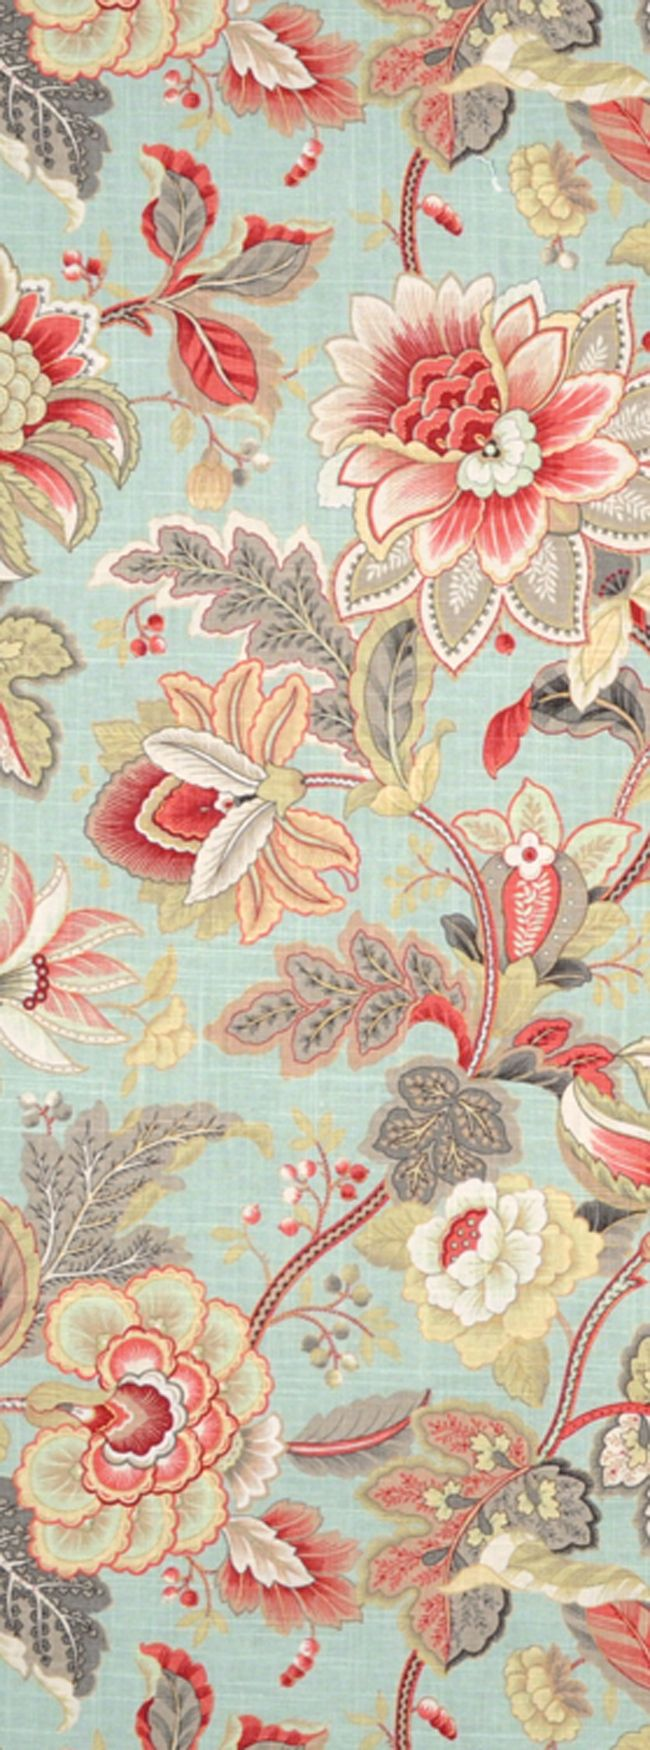 Swavelle / Mill Creek Venezia Dew Fabric featuring blue, gray and coral $22.45 per yard